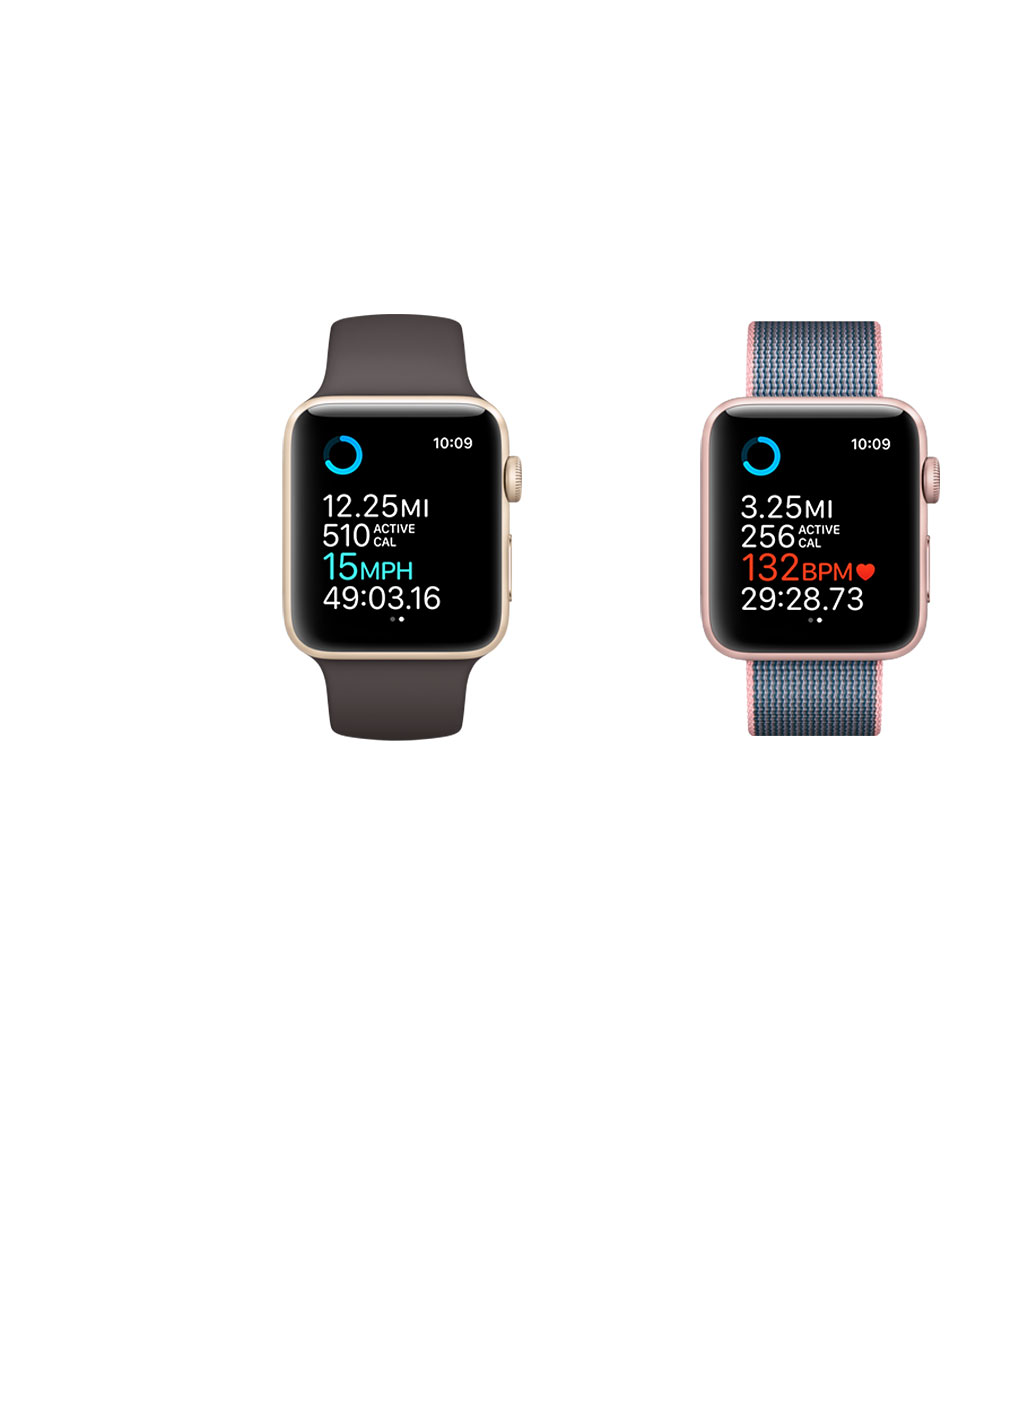 apple 2 watch. built-in gps record precise distance, speed and pace when walking, running, or cycling outdoors. apple 2 watch